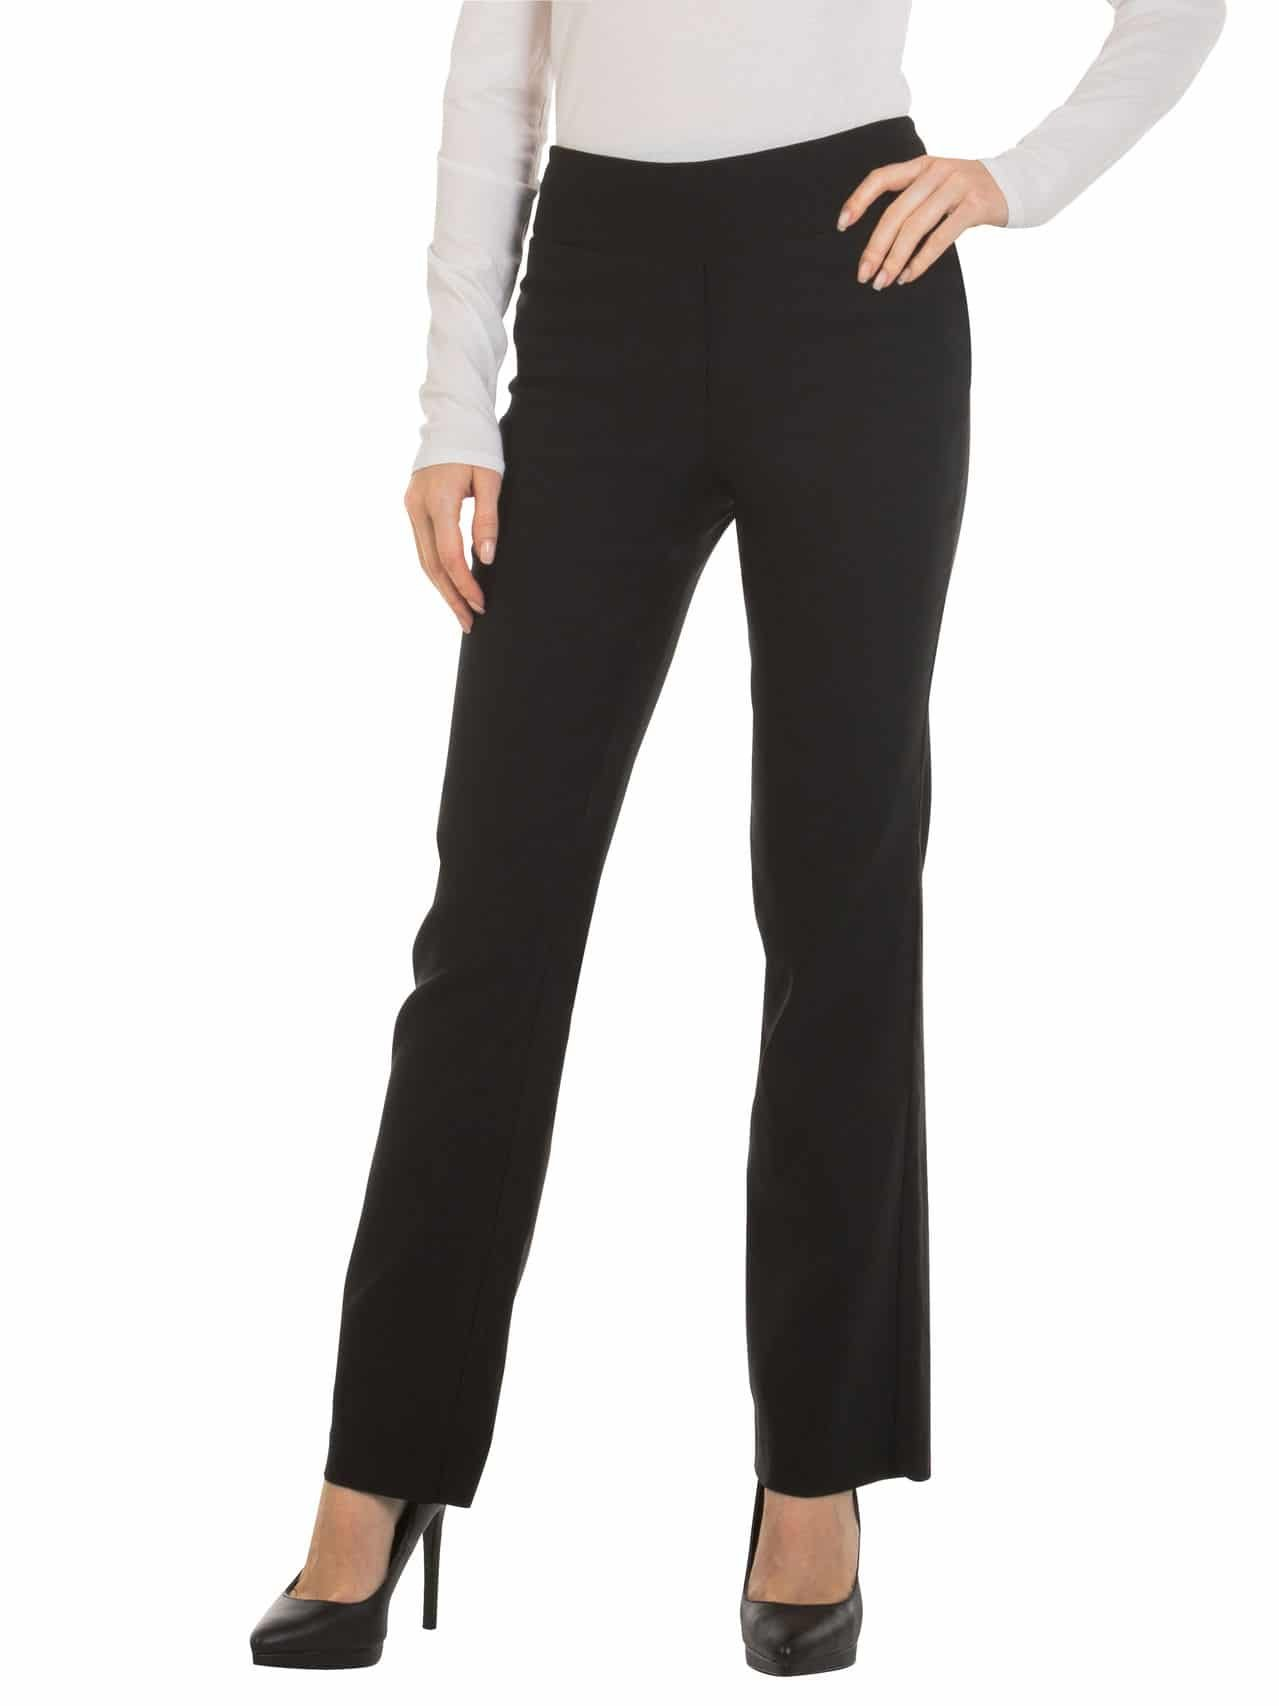 Red Hanger Bootcut Dress Pants for Women -Stretch Comfy Work Pull on Womens Pant Black-XL